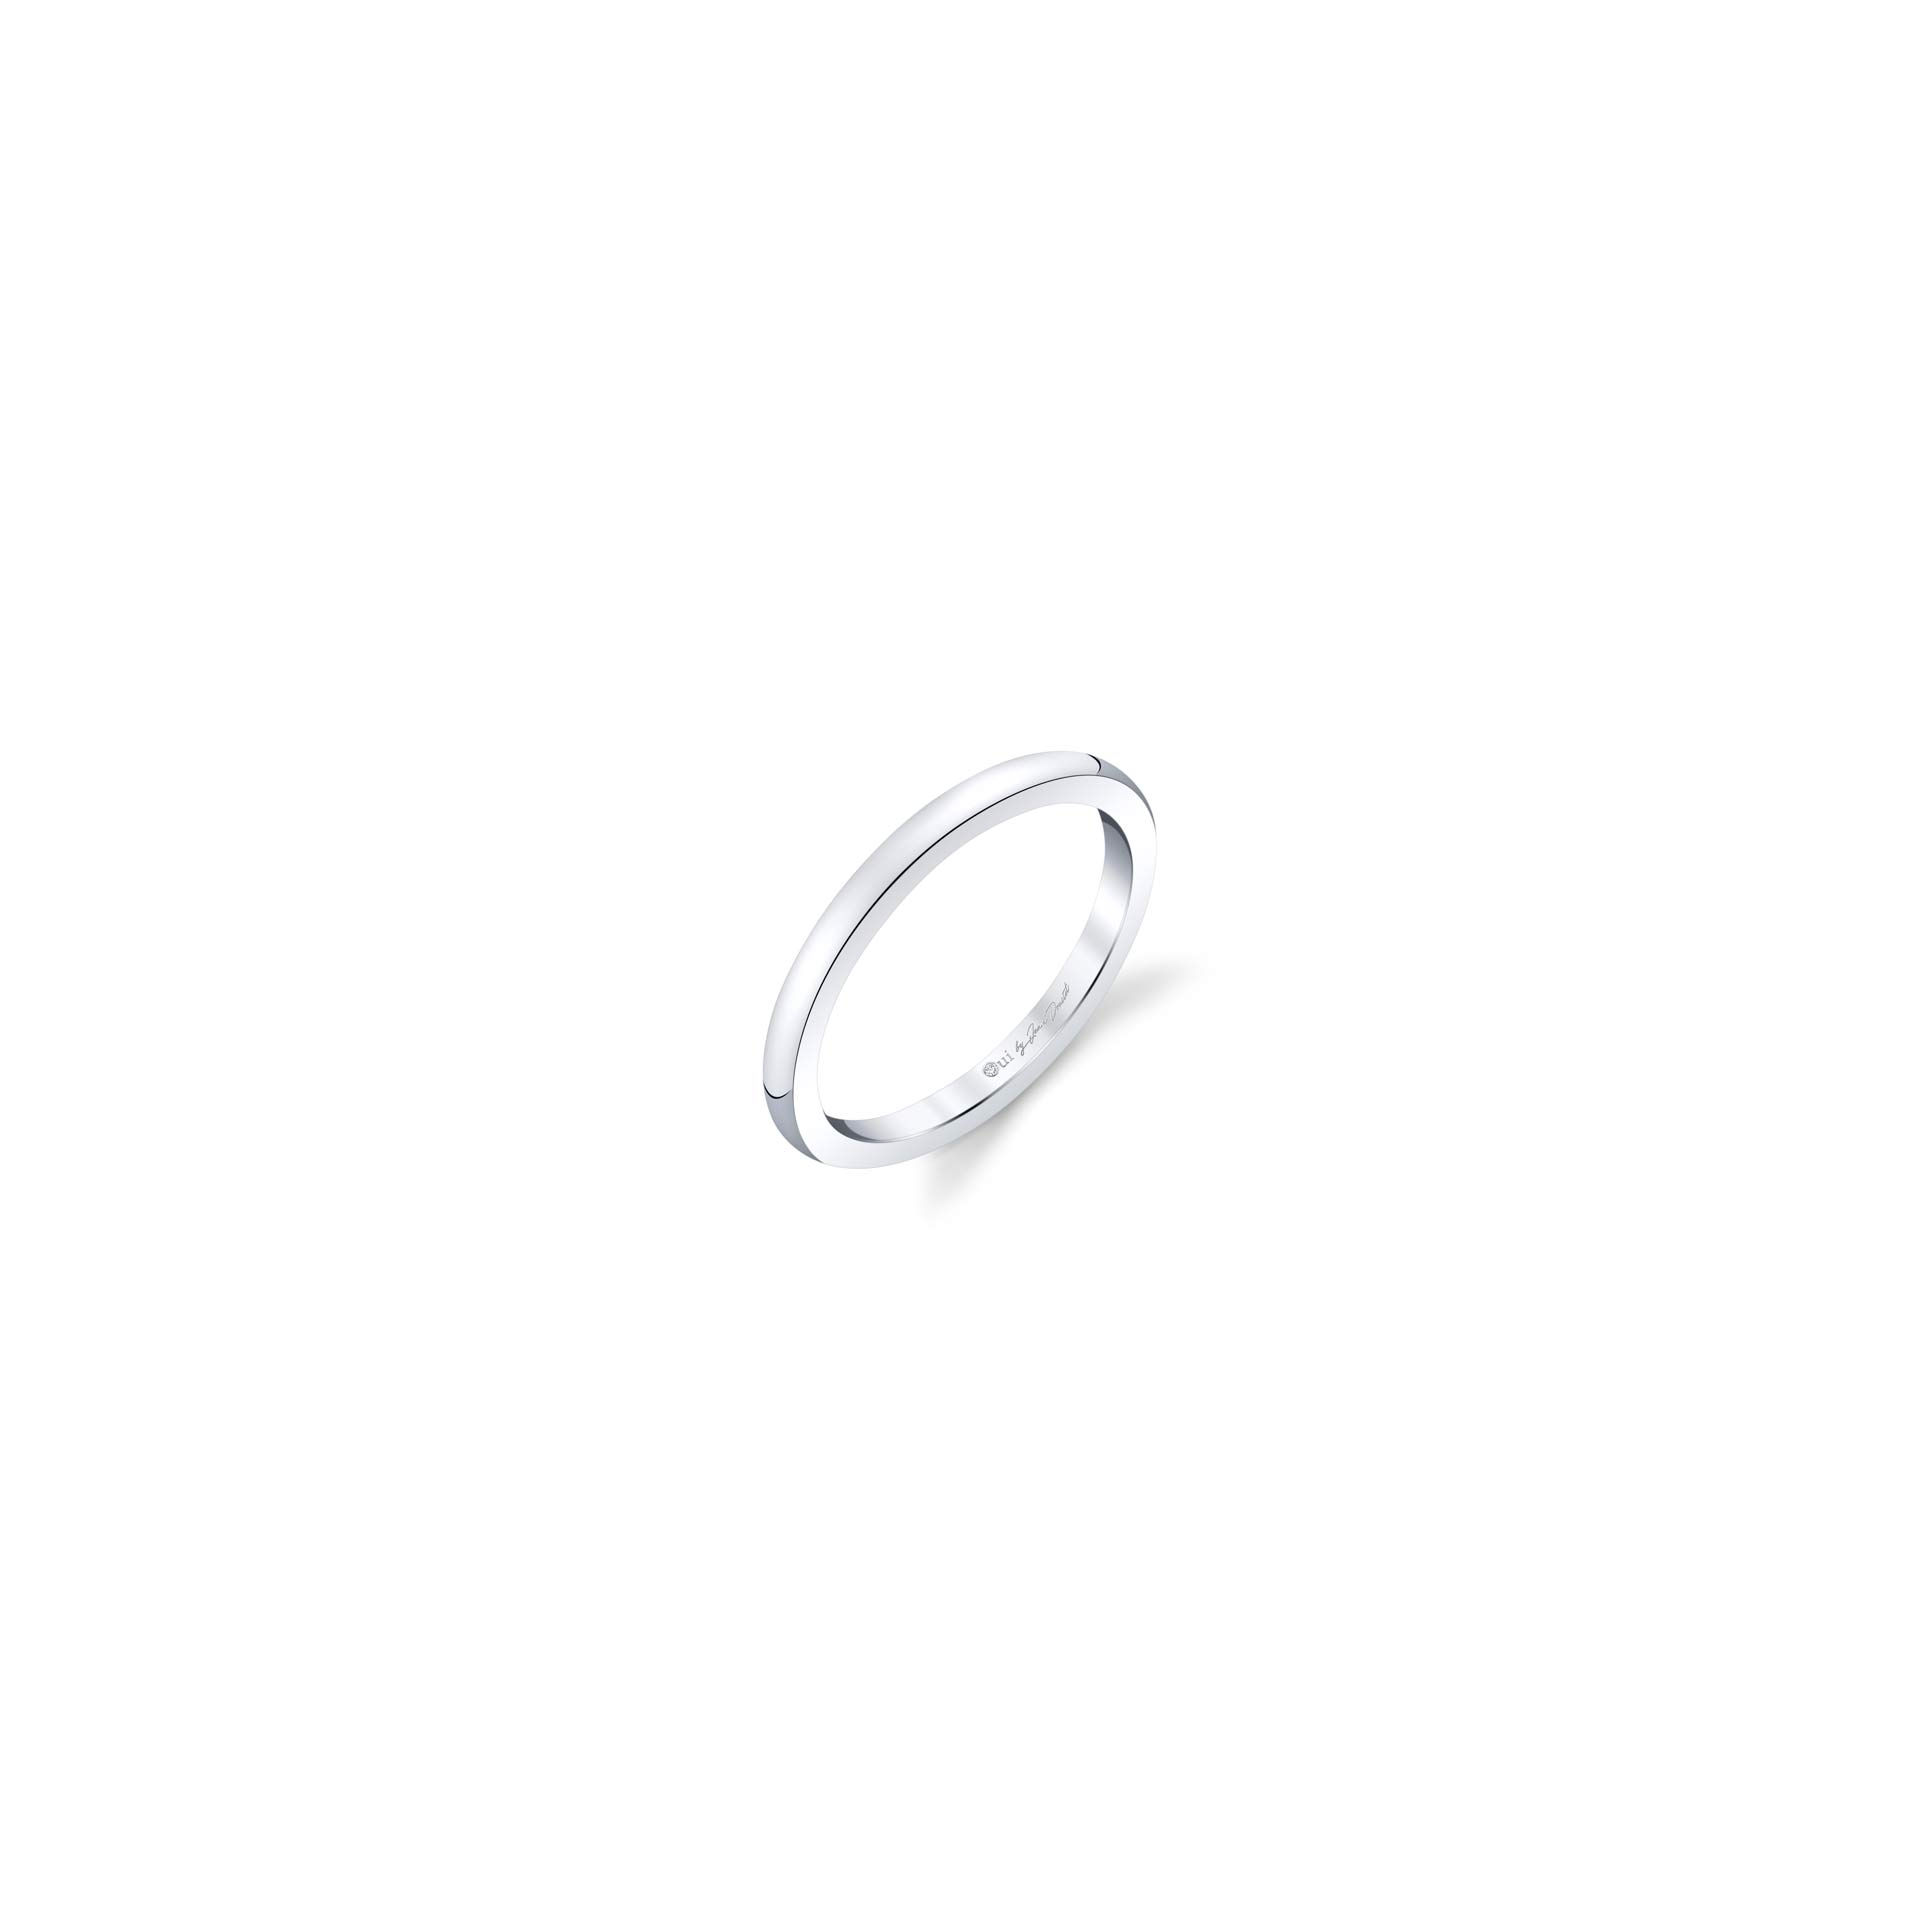 Colette Women's Wedding Band in solid metal in 18k White Gold Standing View by Oui by Jean Dousset